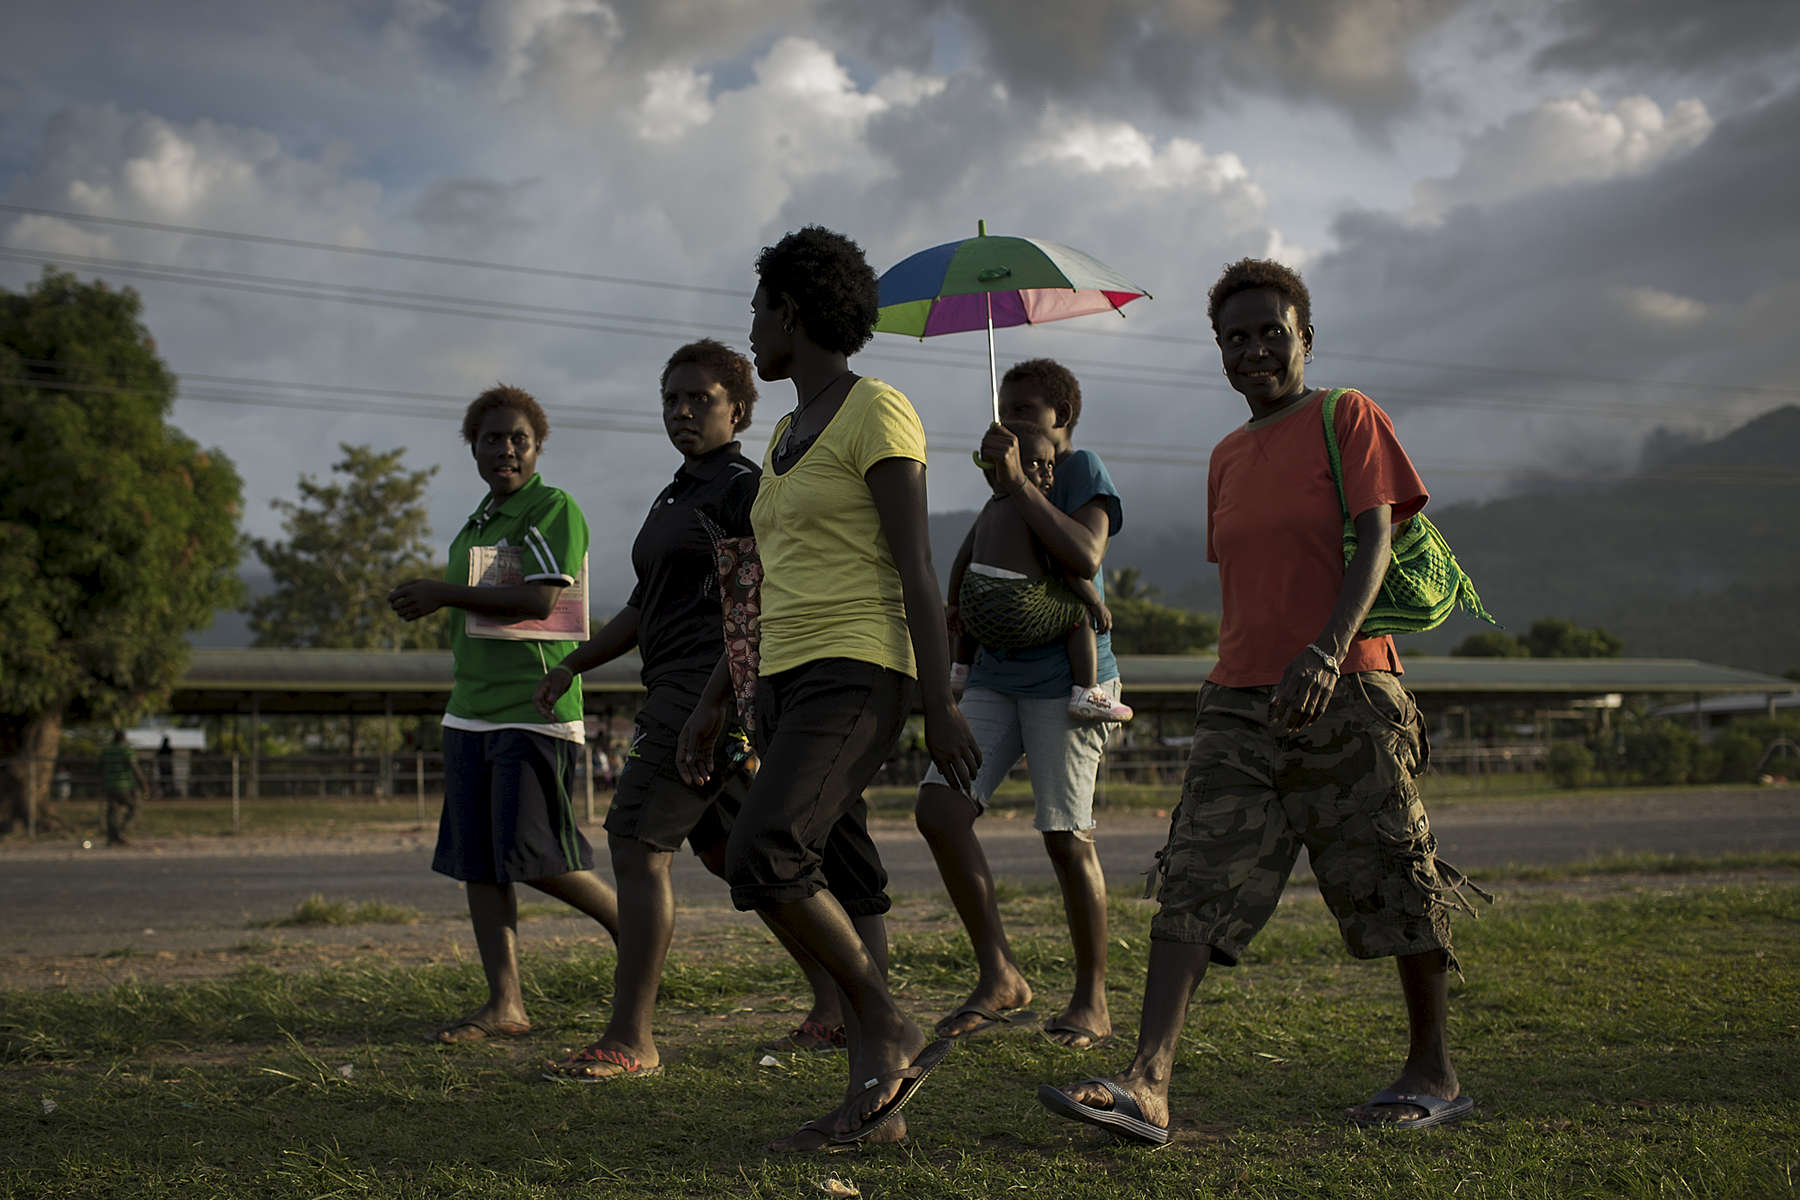 A group of women walk through a park in Arawa, one of the main towns on the semi-autonomous island of Bougainville.